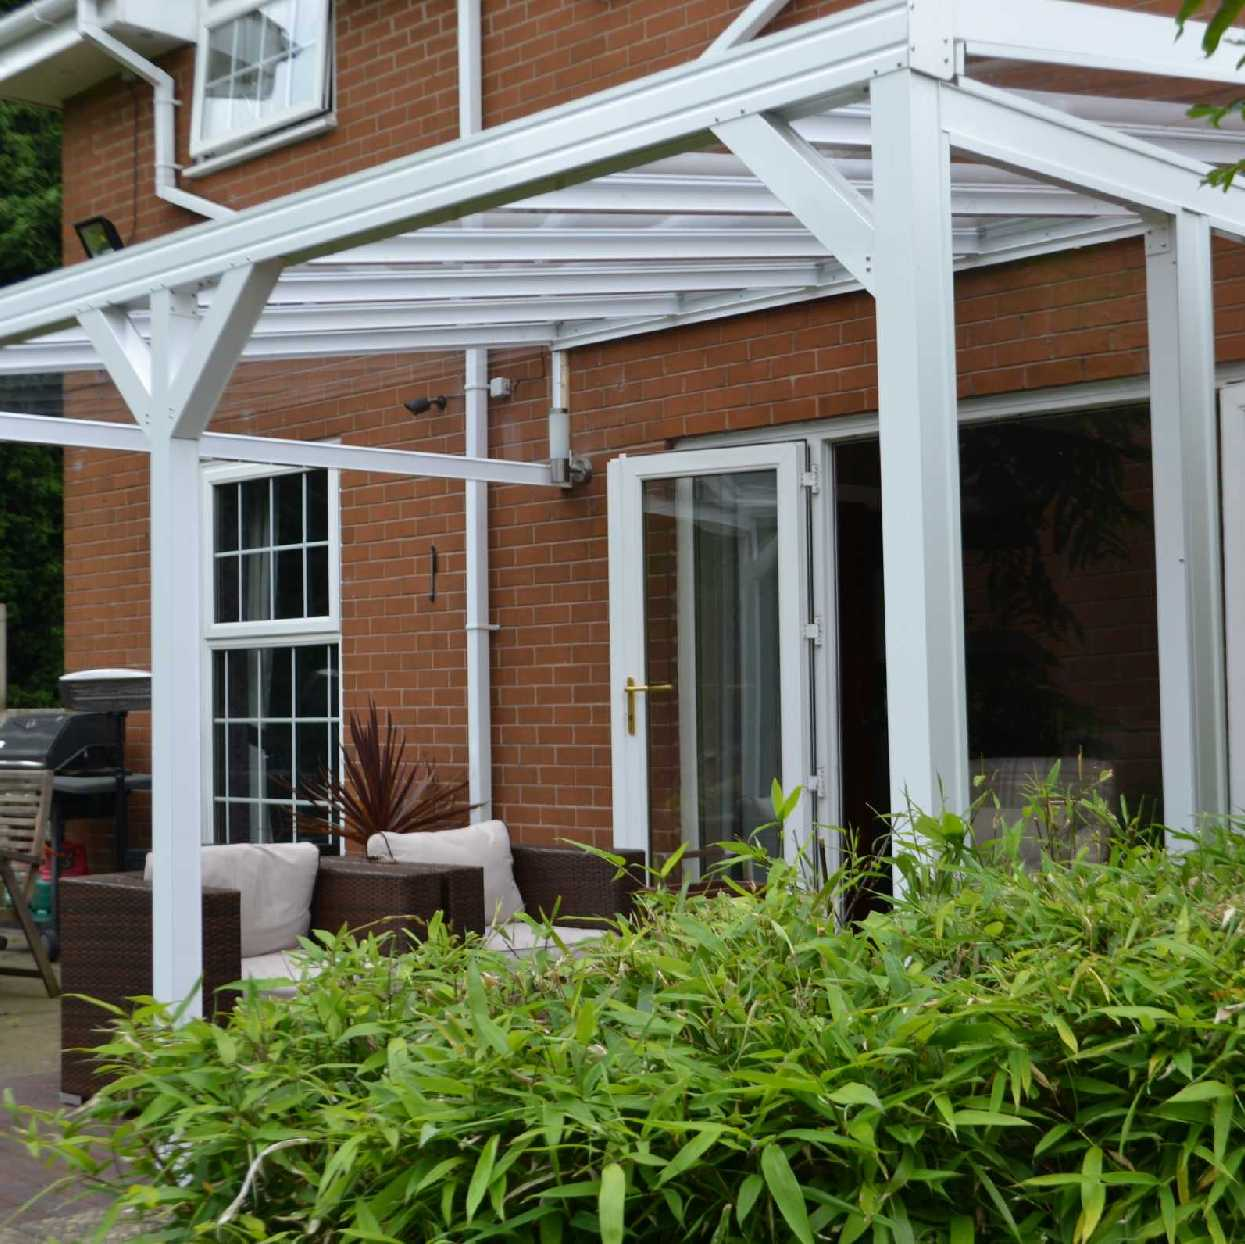 Omega Smart White Lean-To Canopy with 6mm Glass Clear Plate Polycarbonate Glazing - 4.9m (W) x 2.5m (P), (3) Supporting Posts from Omega Build